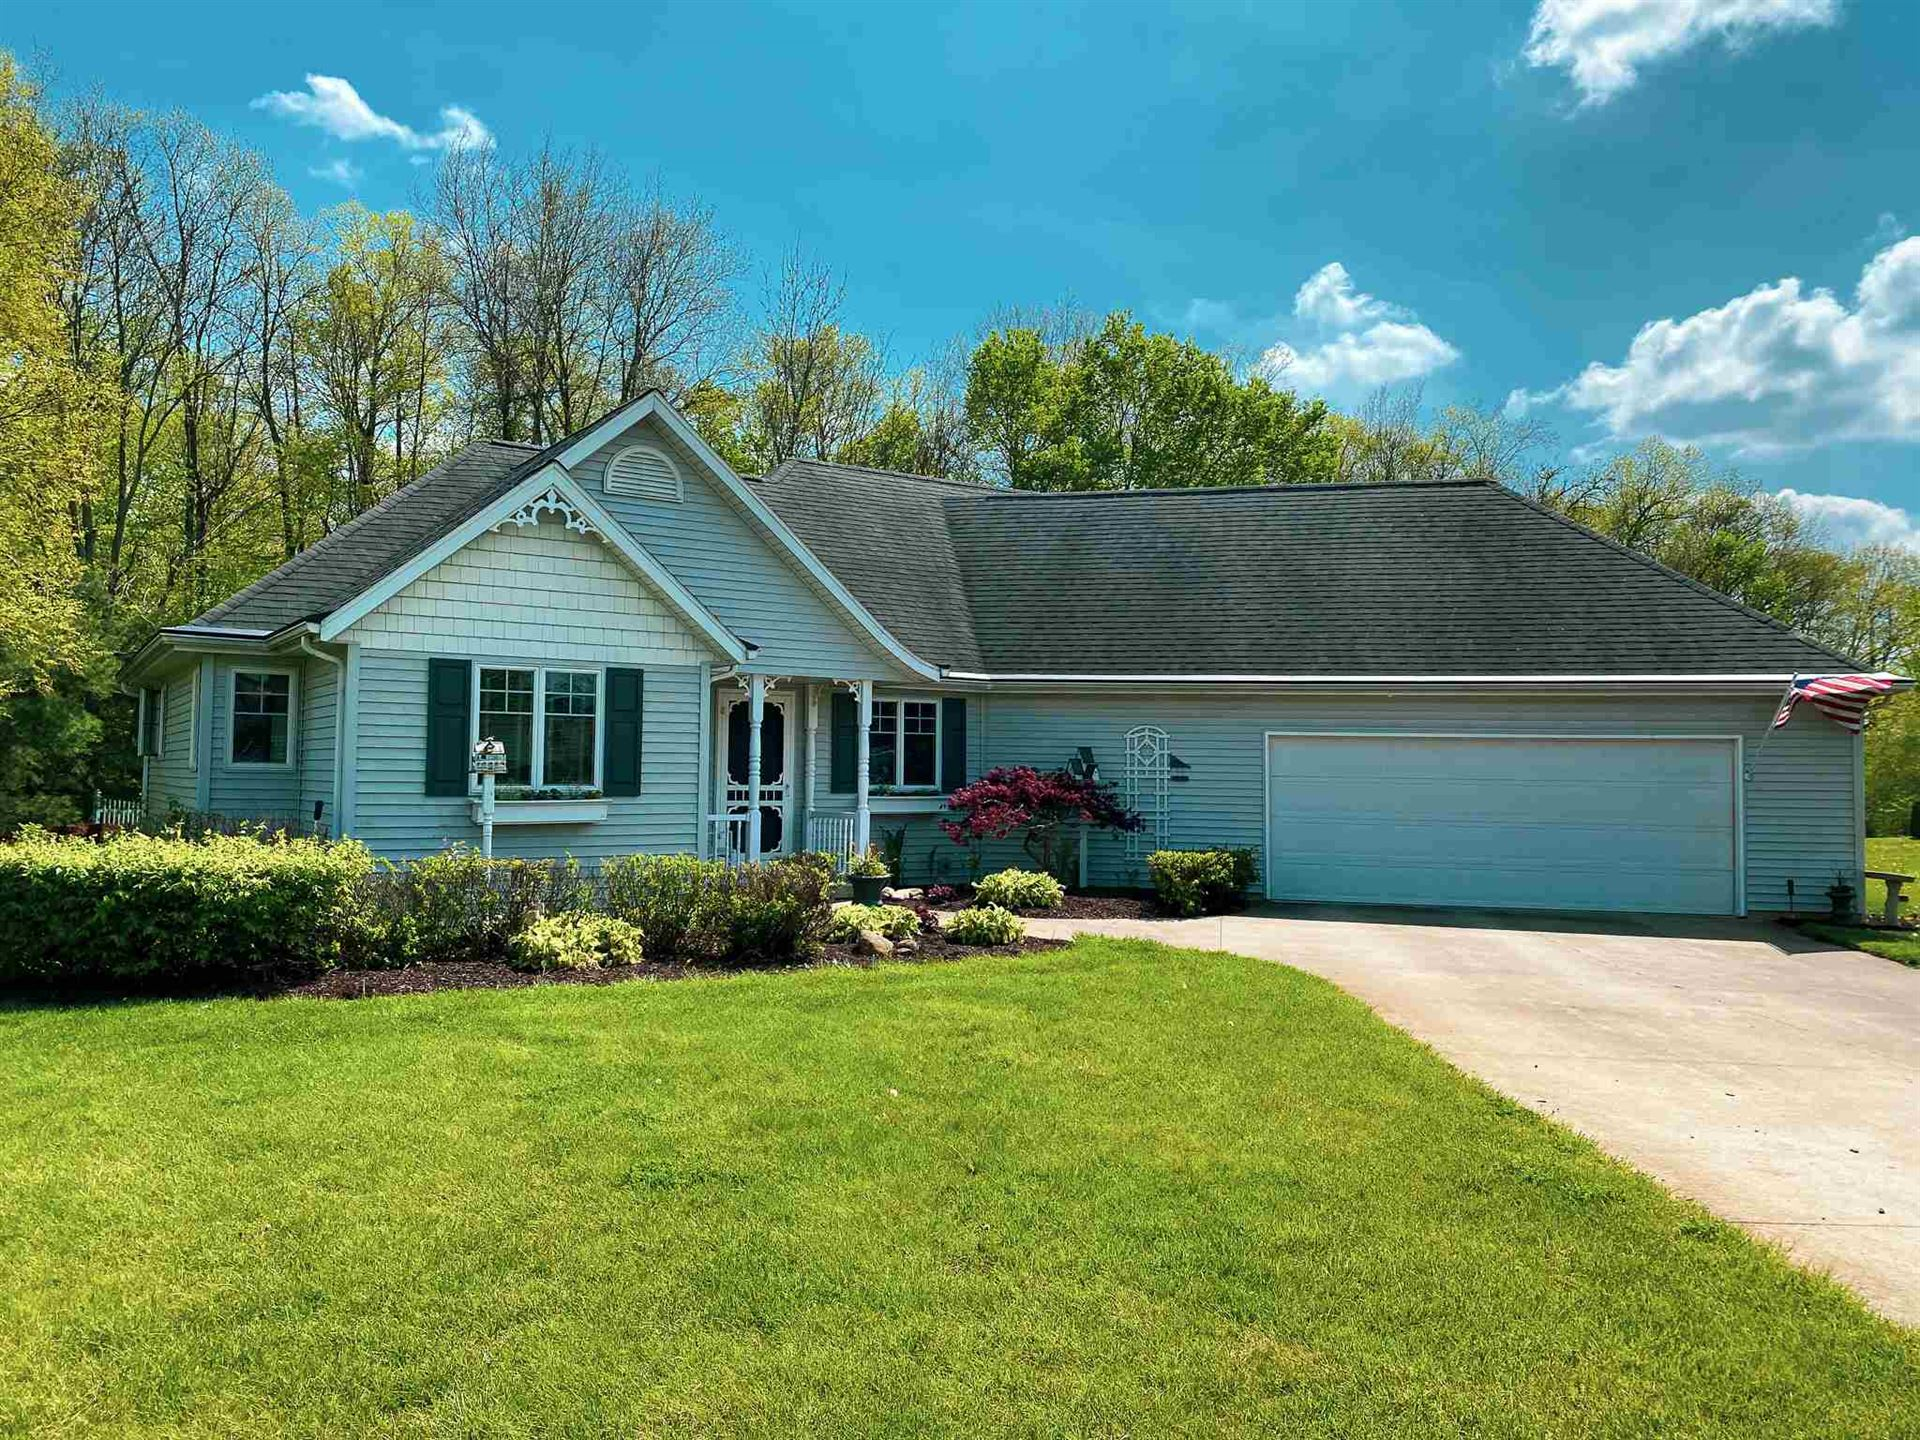 Photo of 2967 E Lapoint Drive, Milford, IN 46542 (MLS # 202009279)